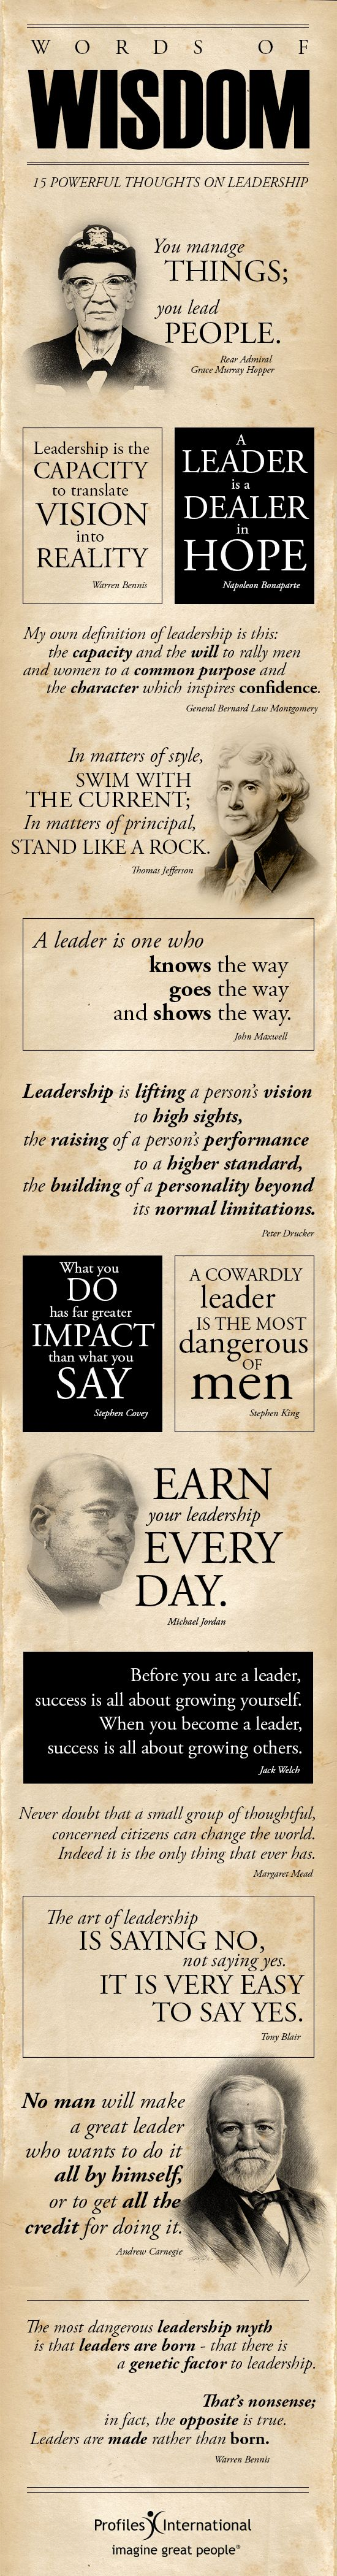 Words of Wisdom: 15 Powerful Thoughts on Leadership More on Http://info.profilesinternational.com